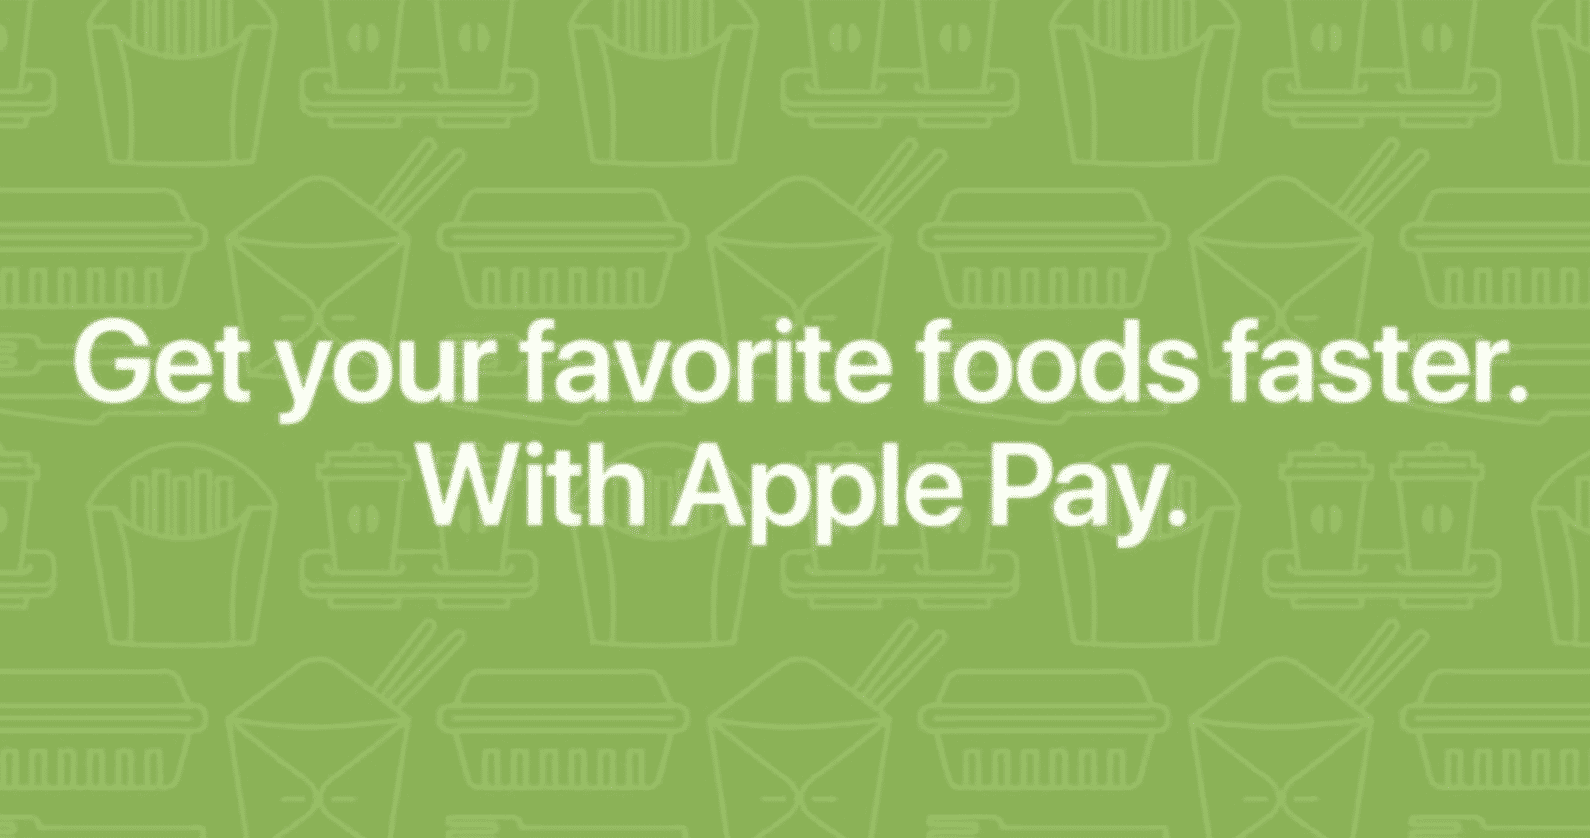 Latest Apple Pay Promo Takes $5 Off on Uber Eats